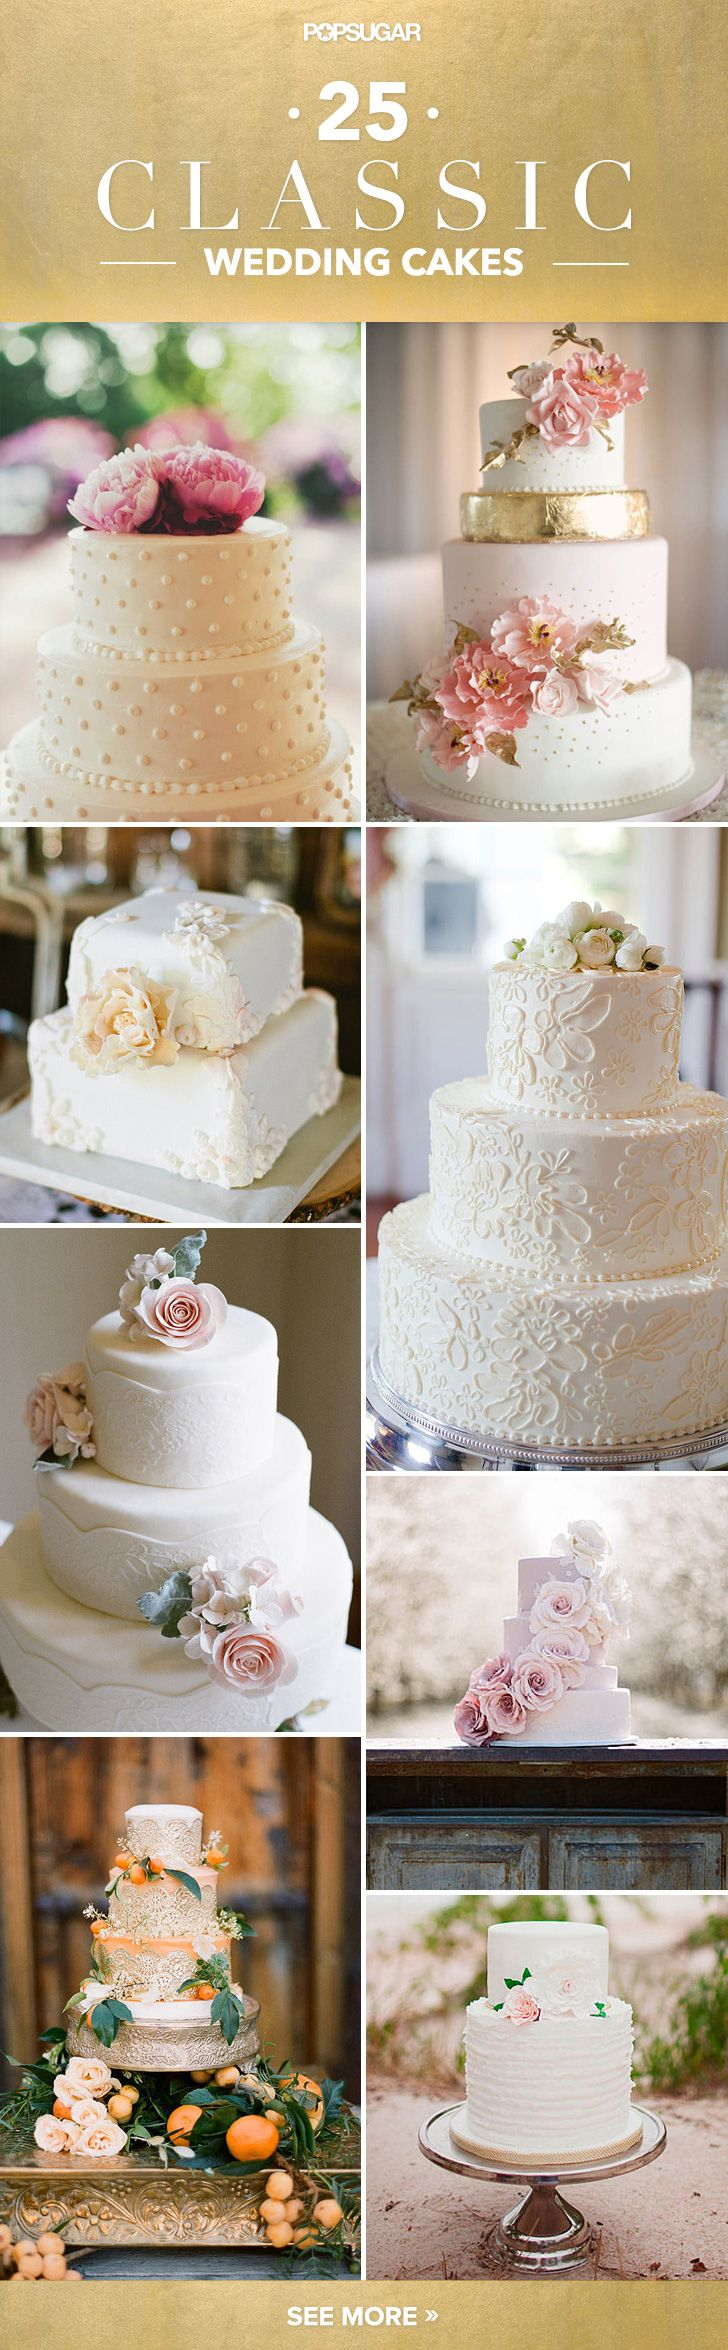 25 Classiclu Chic Wedding Cakes That Stand the Test of Time // Ask your planner how the Waterview's bakery can make your dream cake a delicious reality. // #thewaterview #weddingcake #inspiration // www.waterviewcatering.com